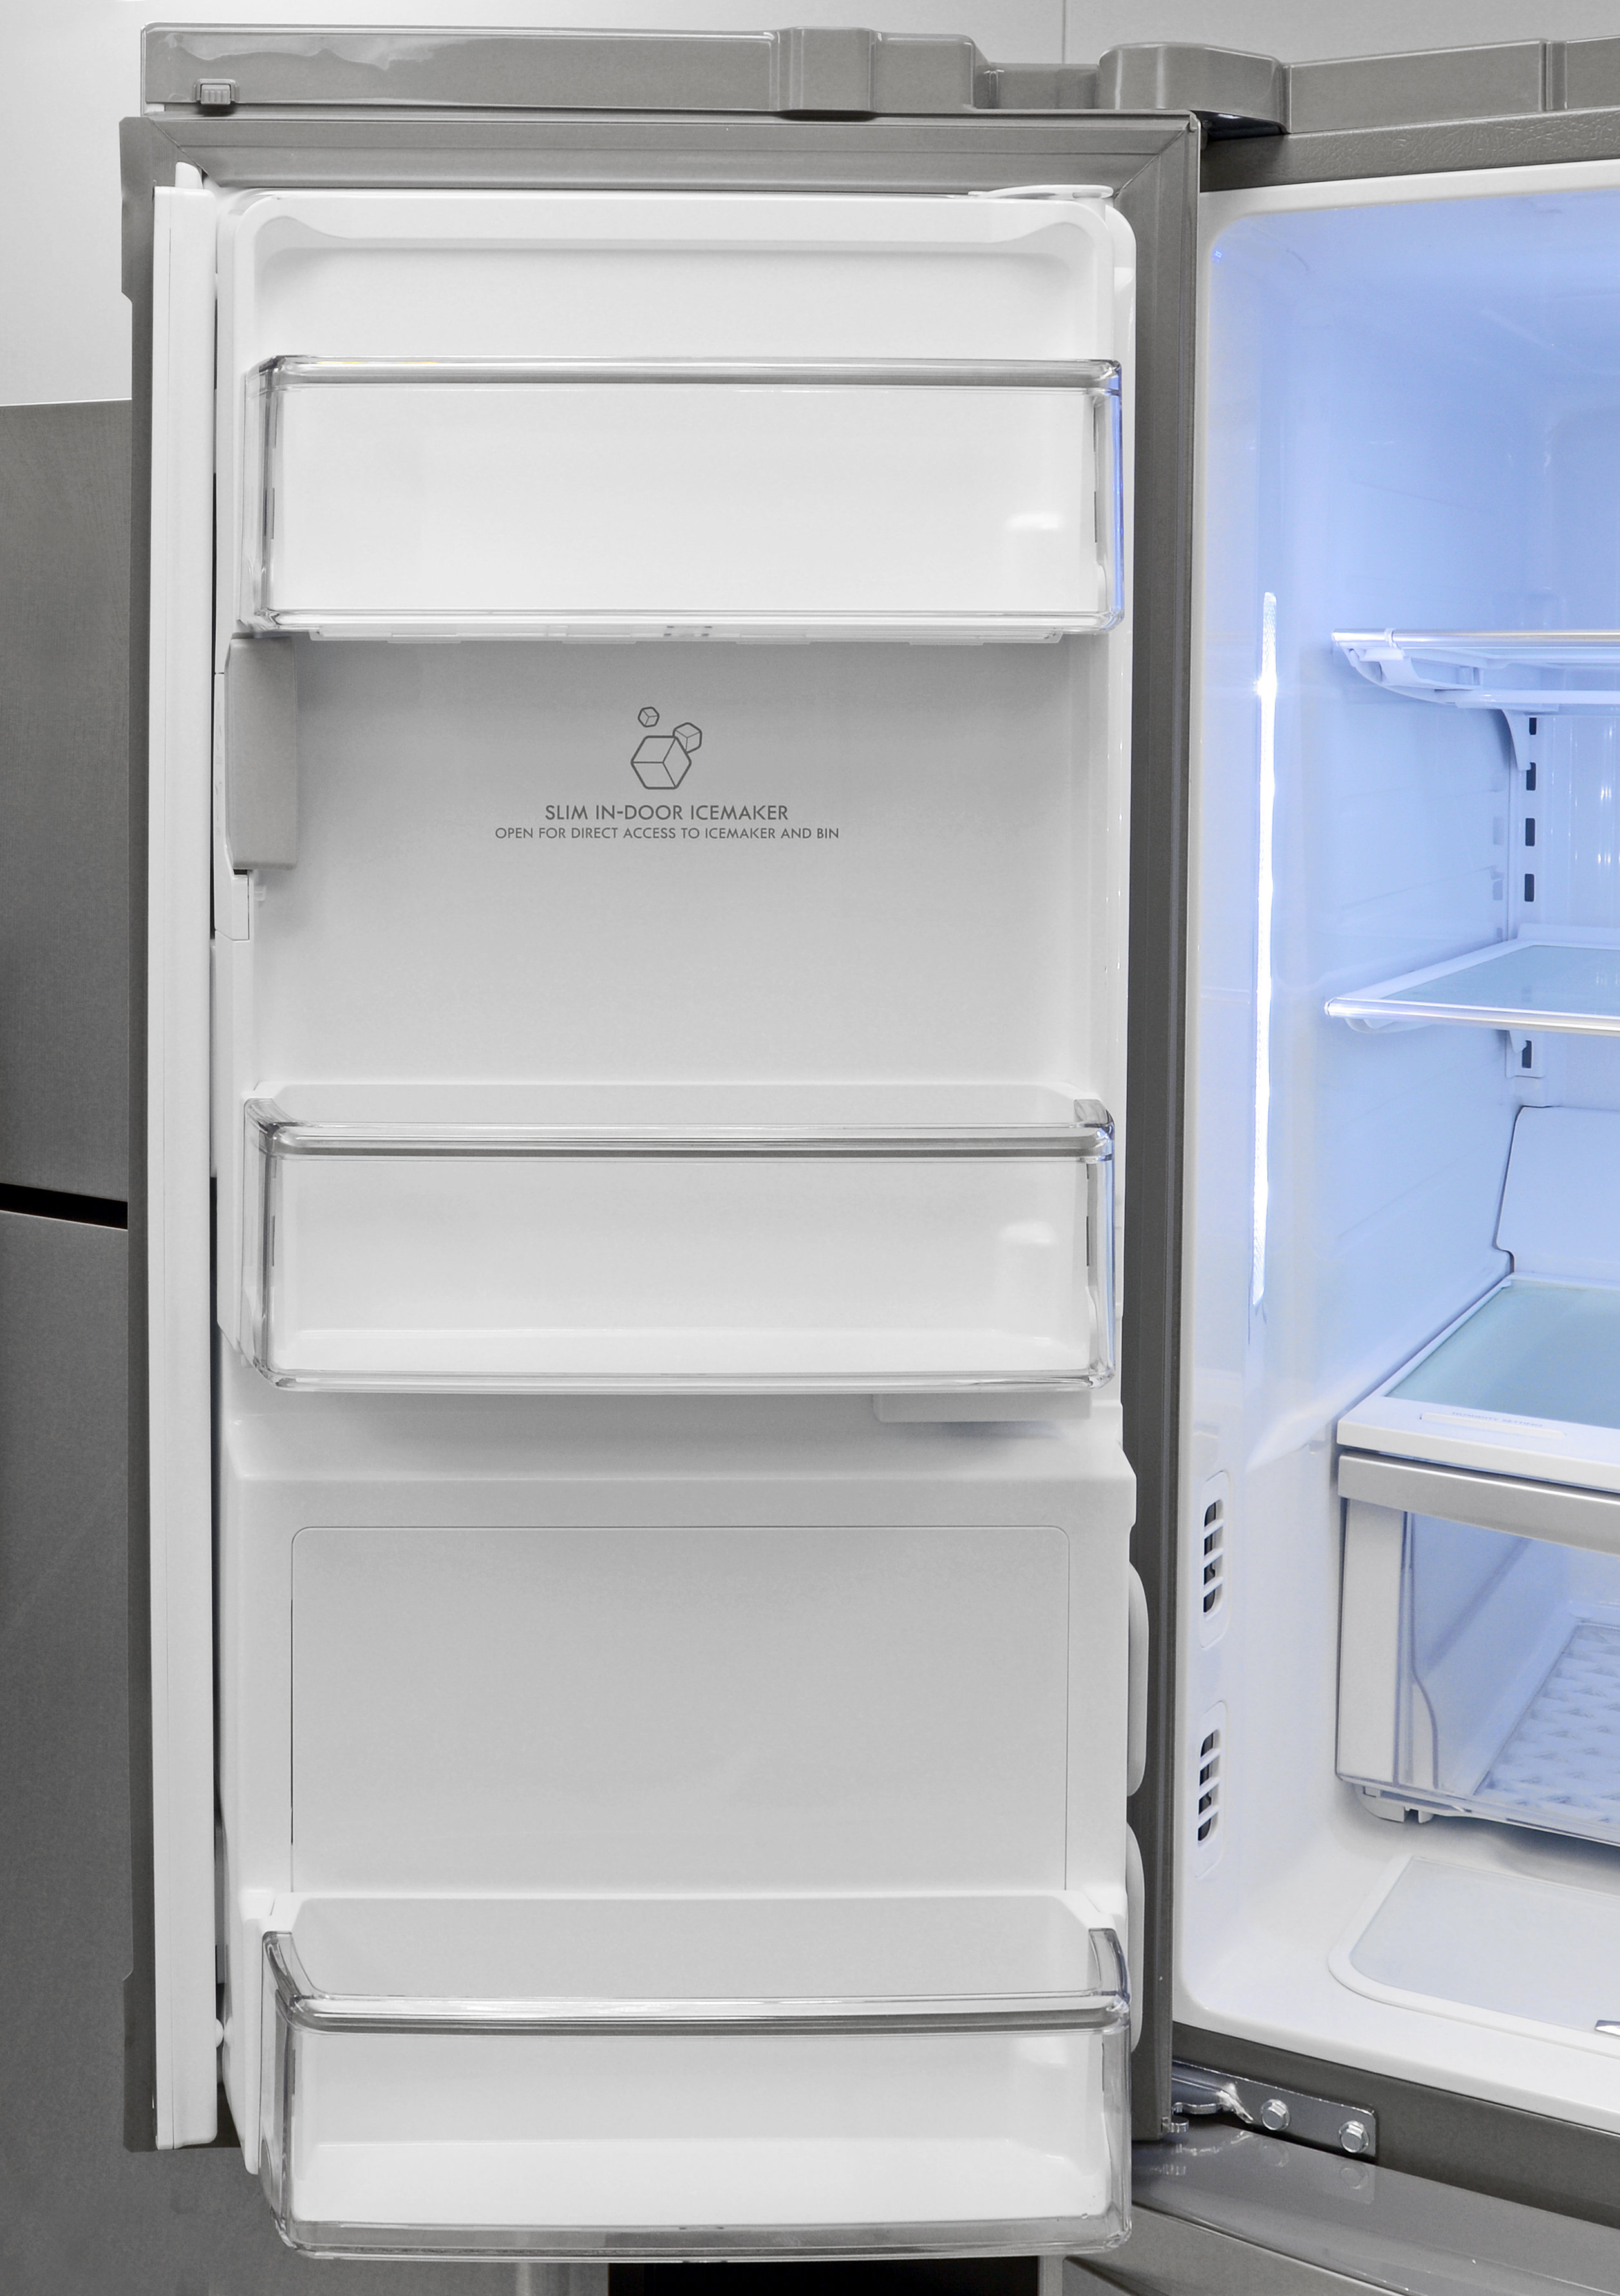 The Kenmore Elite 72483's left fridge door houses both the icemaker and the water filter.